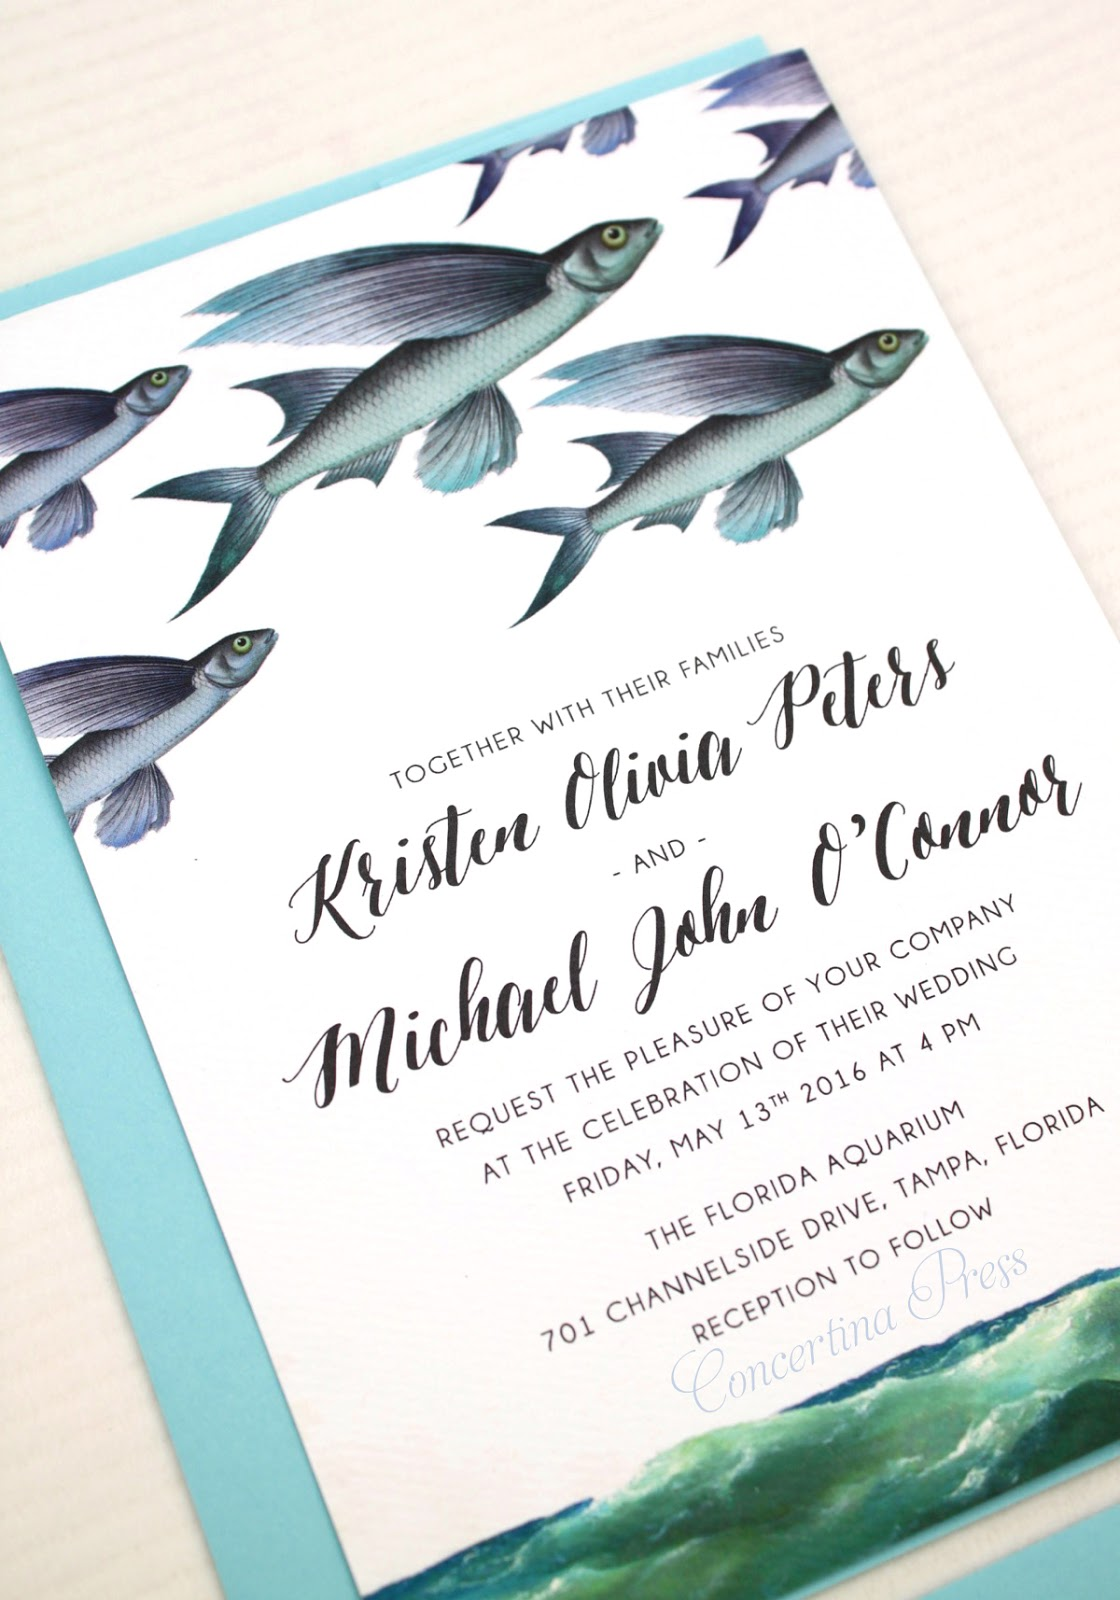 Flying Fish Boho Beach Wedding Invitations from Concertina Press